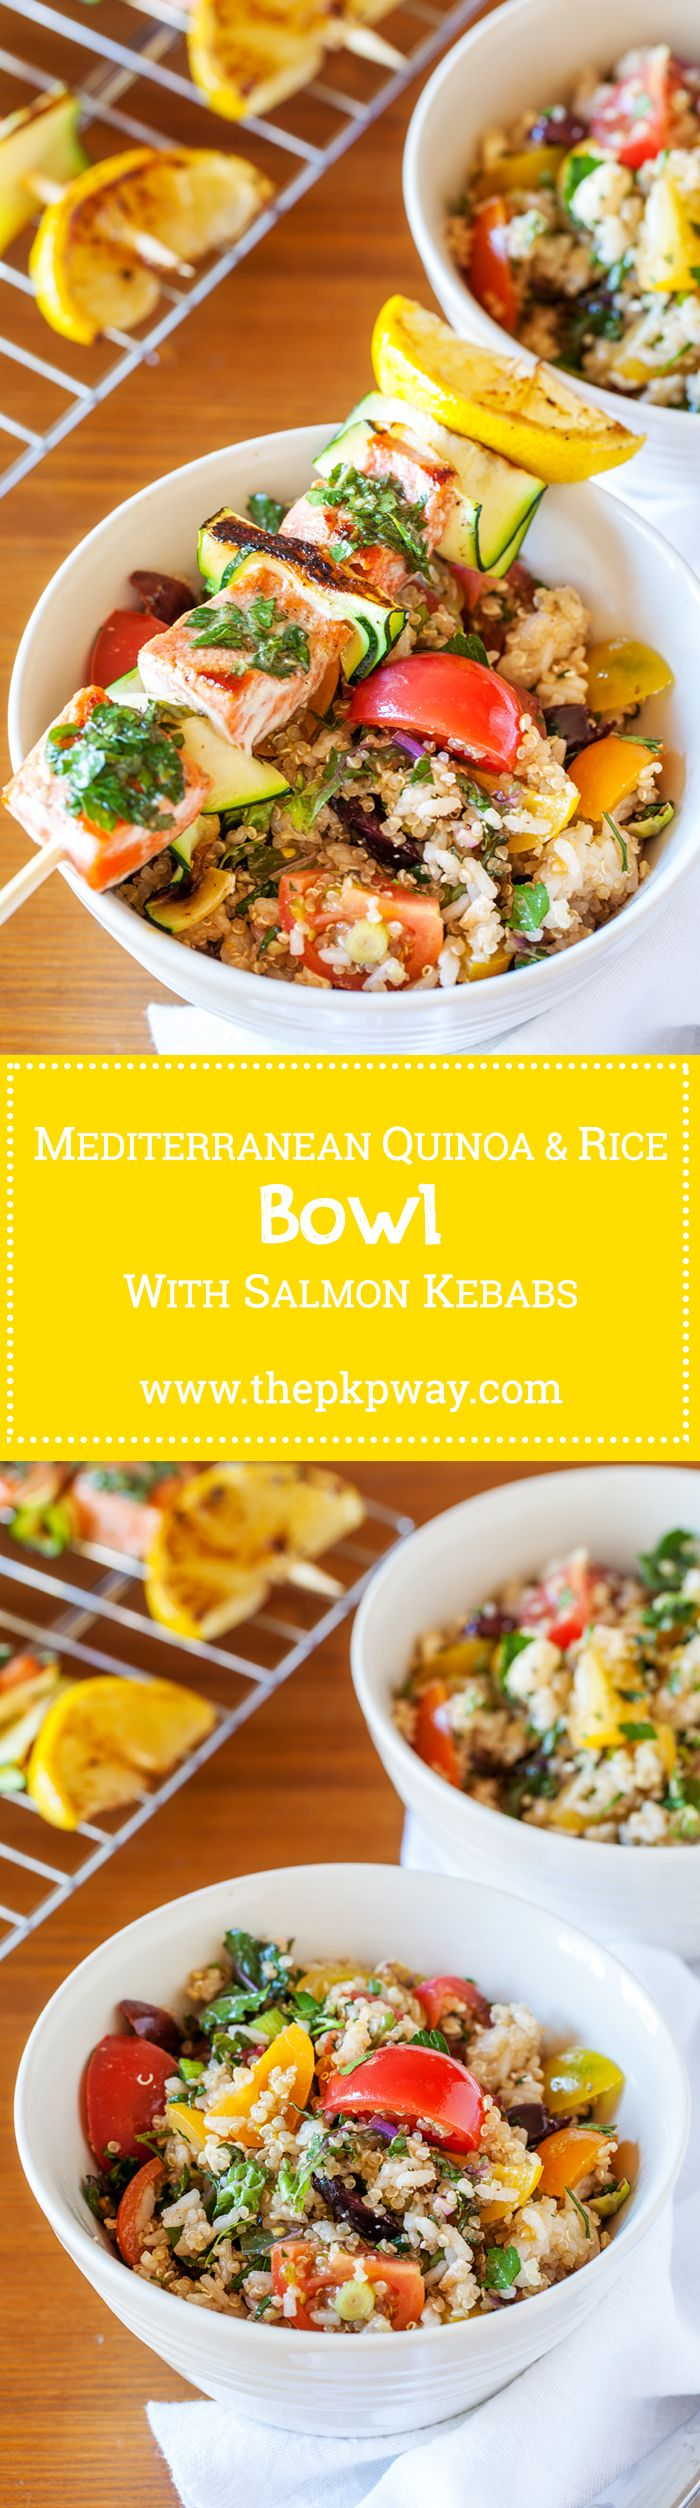 Mediterranean Quinoa & Rice Bowl with Salmon Kebabs - Easy to make ahead and checks off all the food groups!